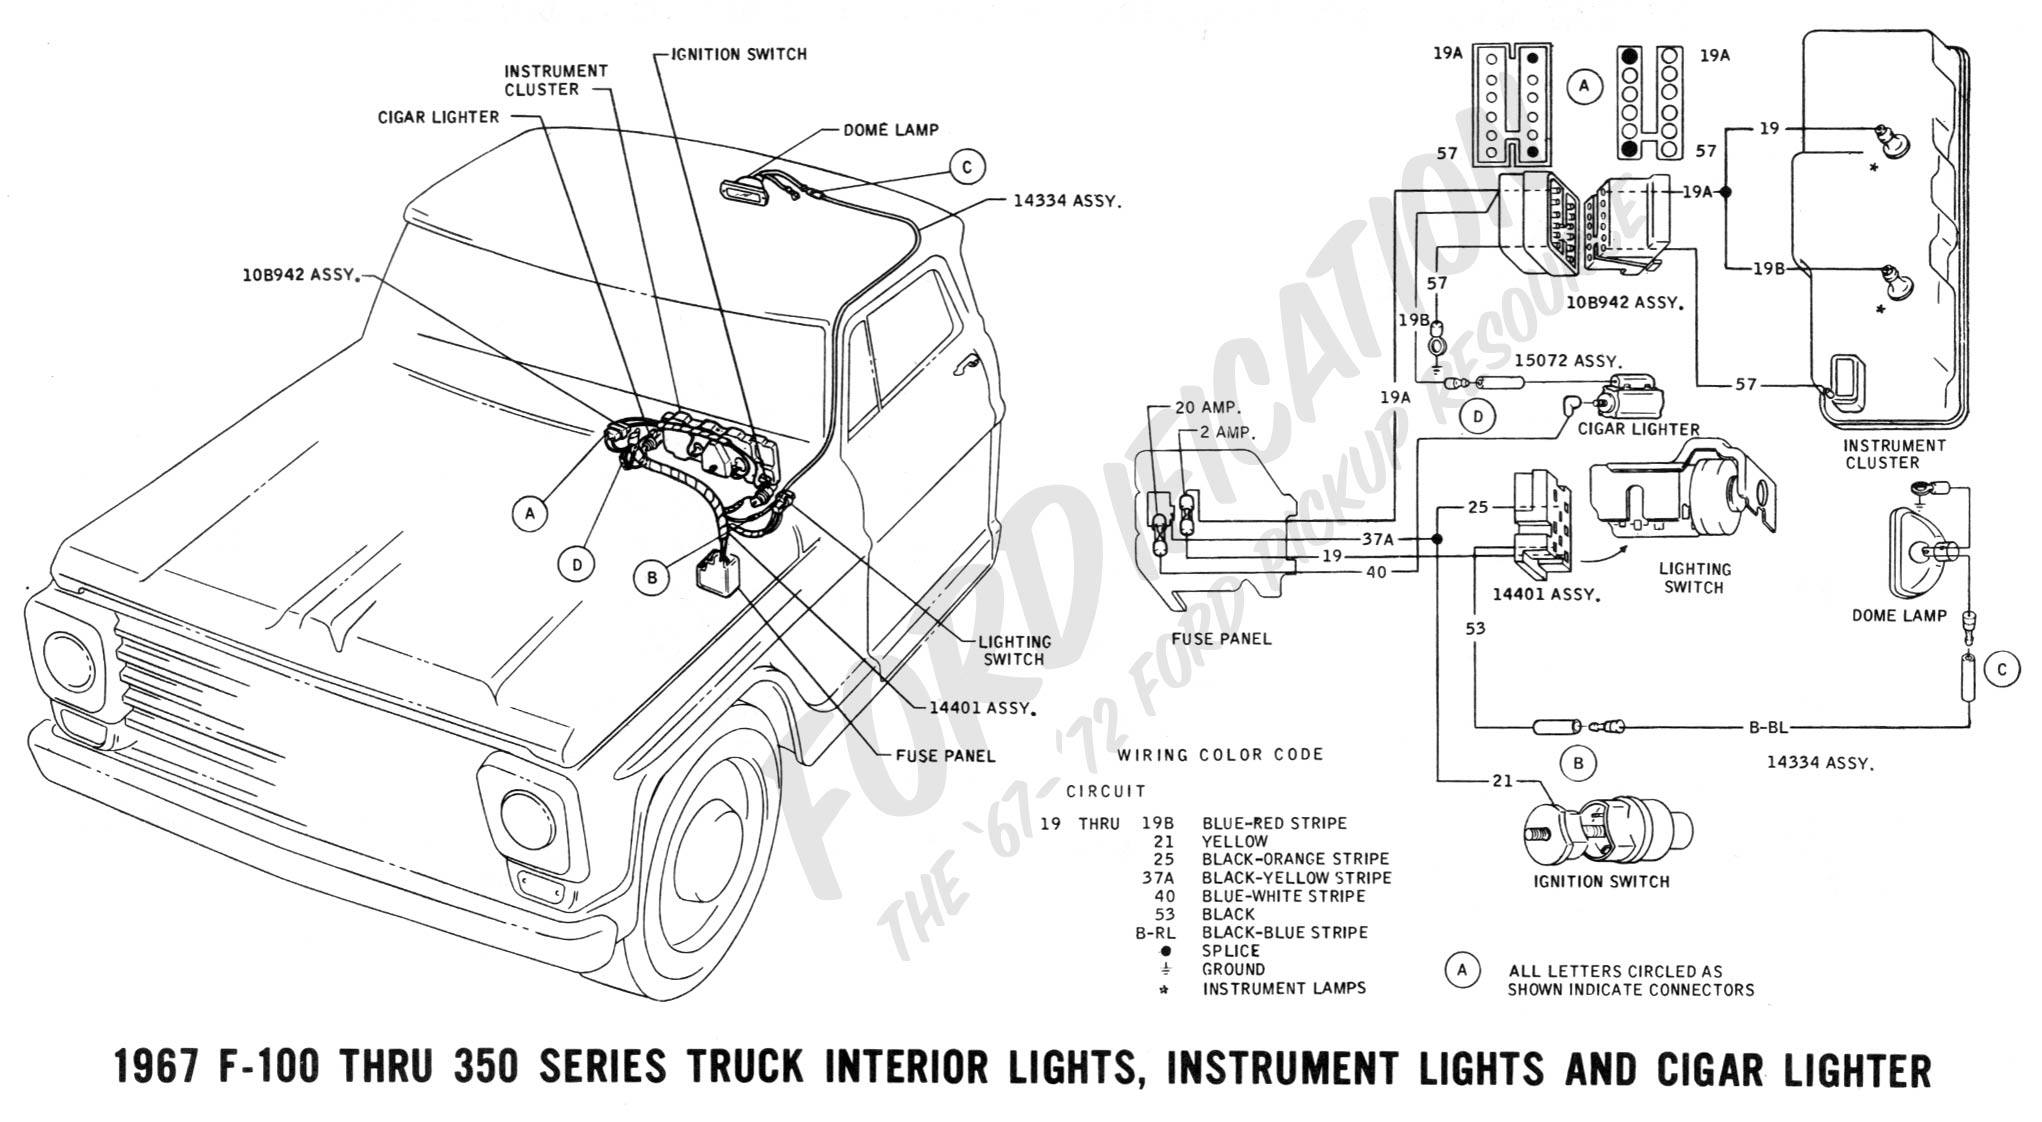 1967 thunderbird turn signal diagram wiring schematic cz 5033  1967 ford f100 350 complete exterior lights and turn  1967 ford f100 350 complete exterior